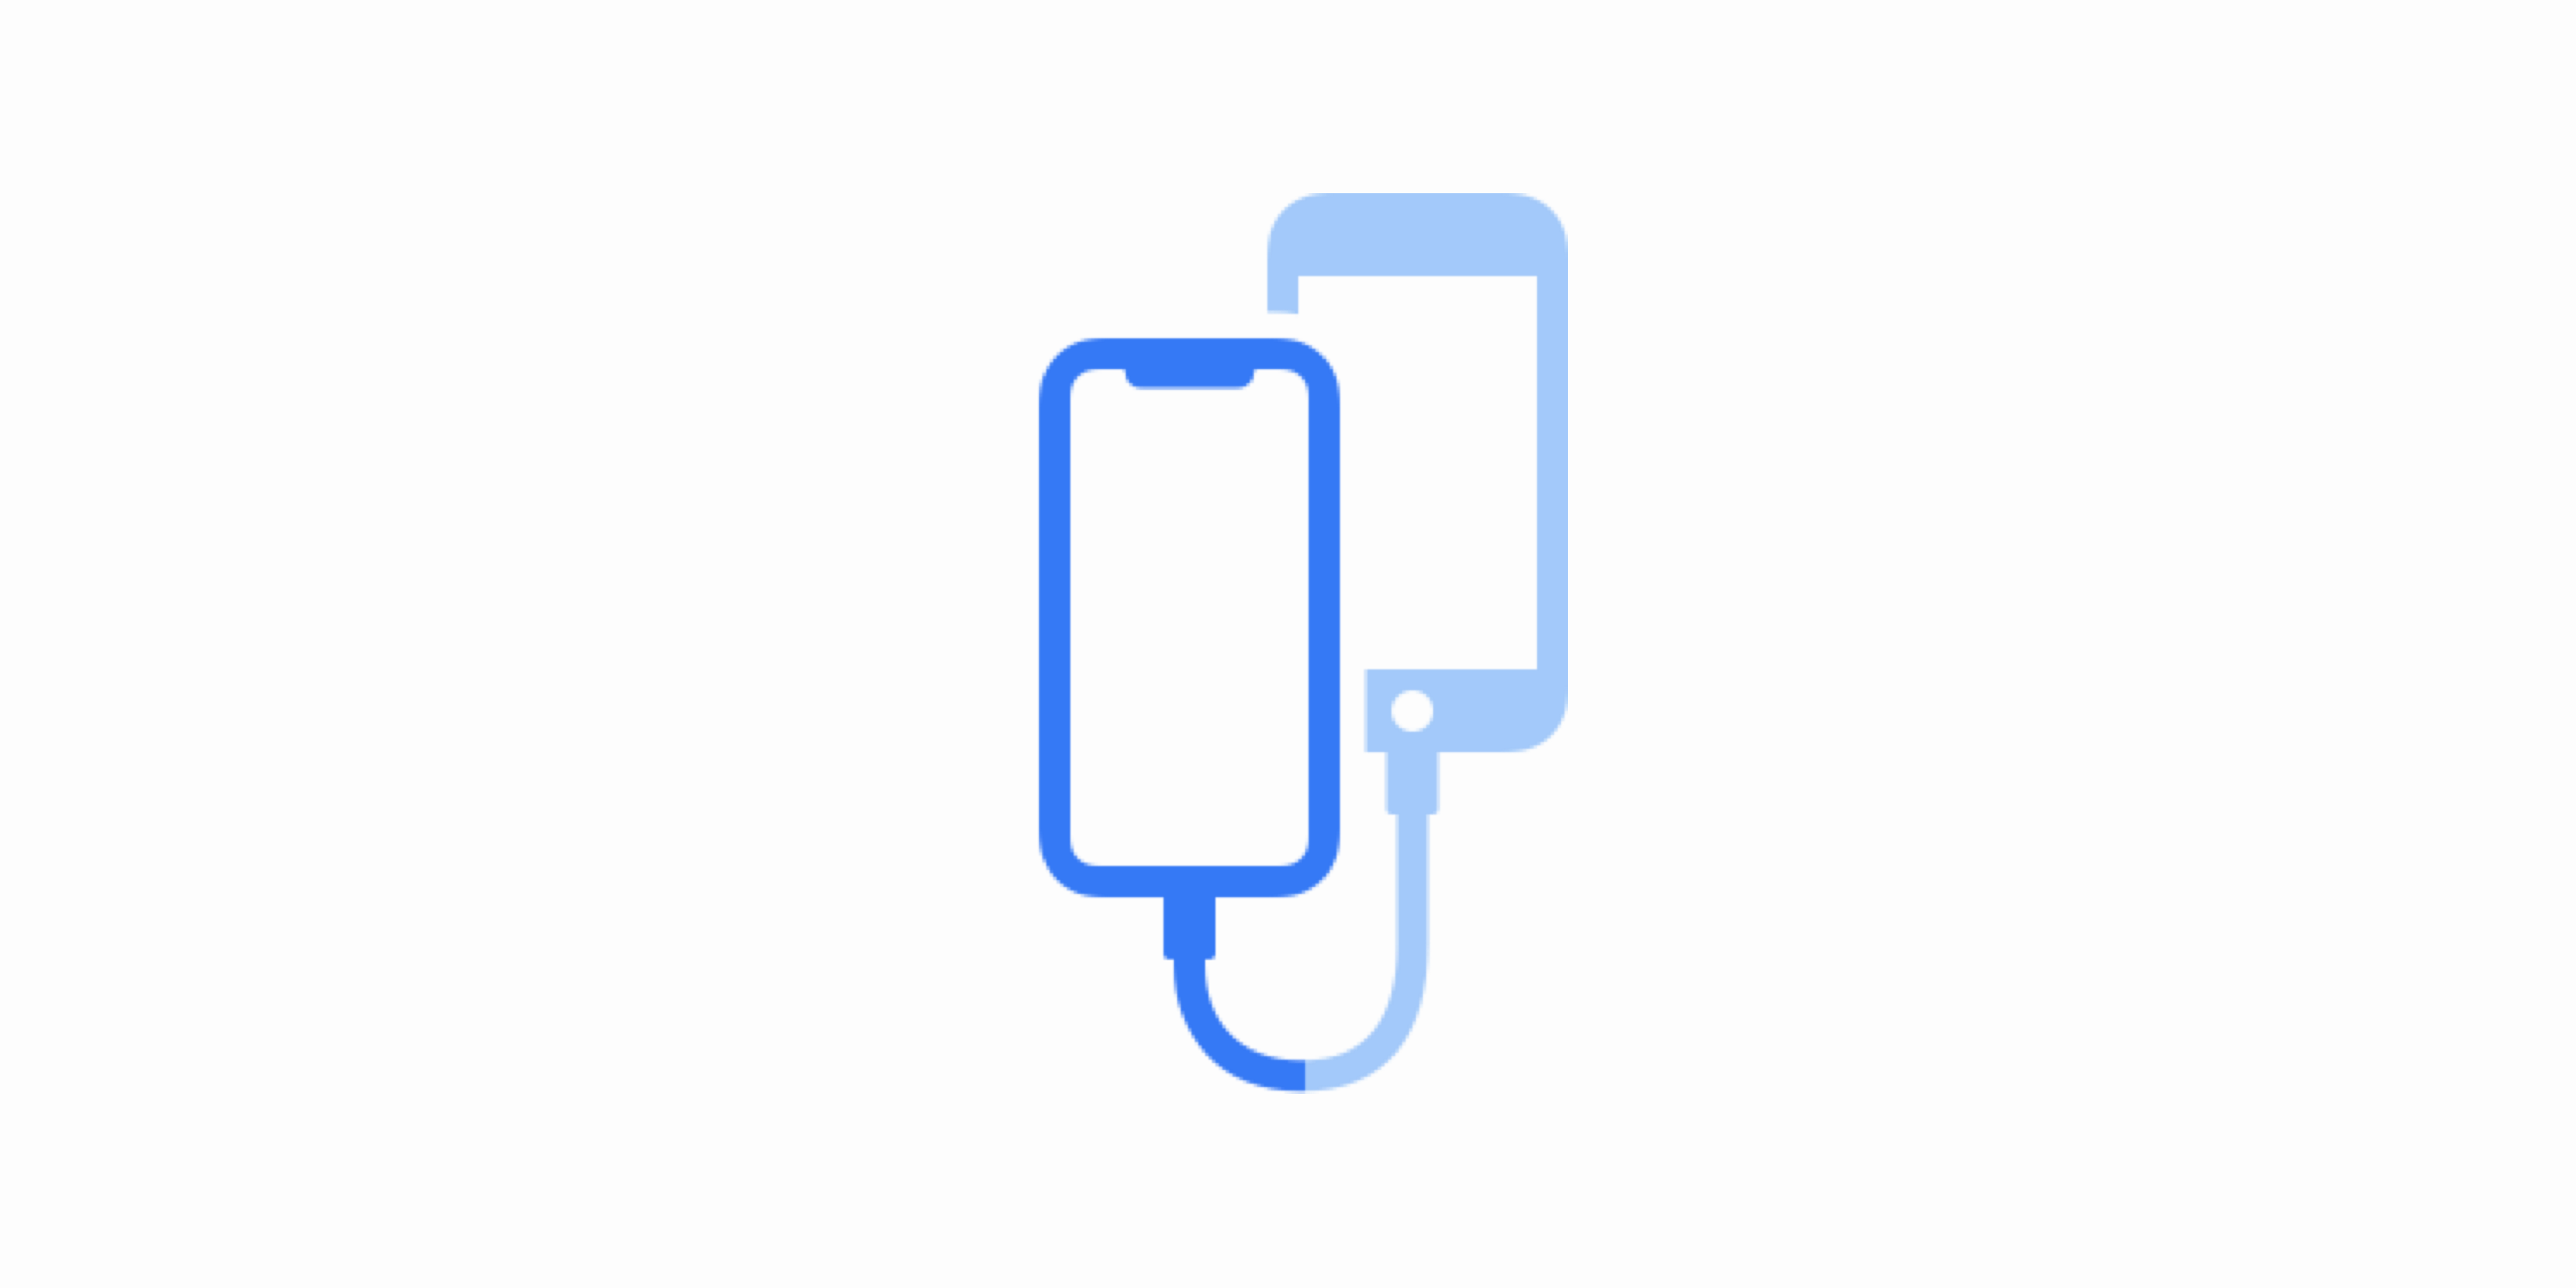 wiredtransfer-ios13b3-1.png